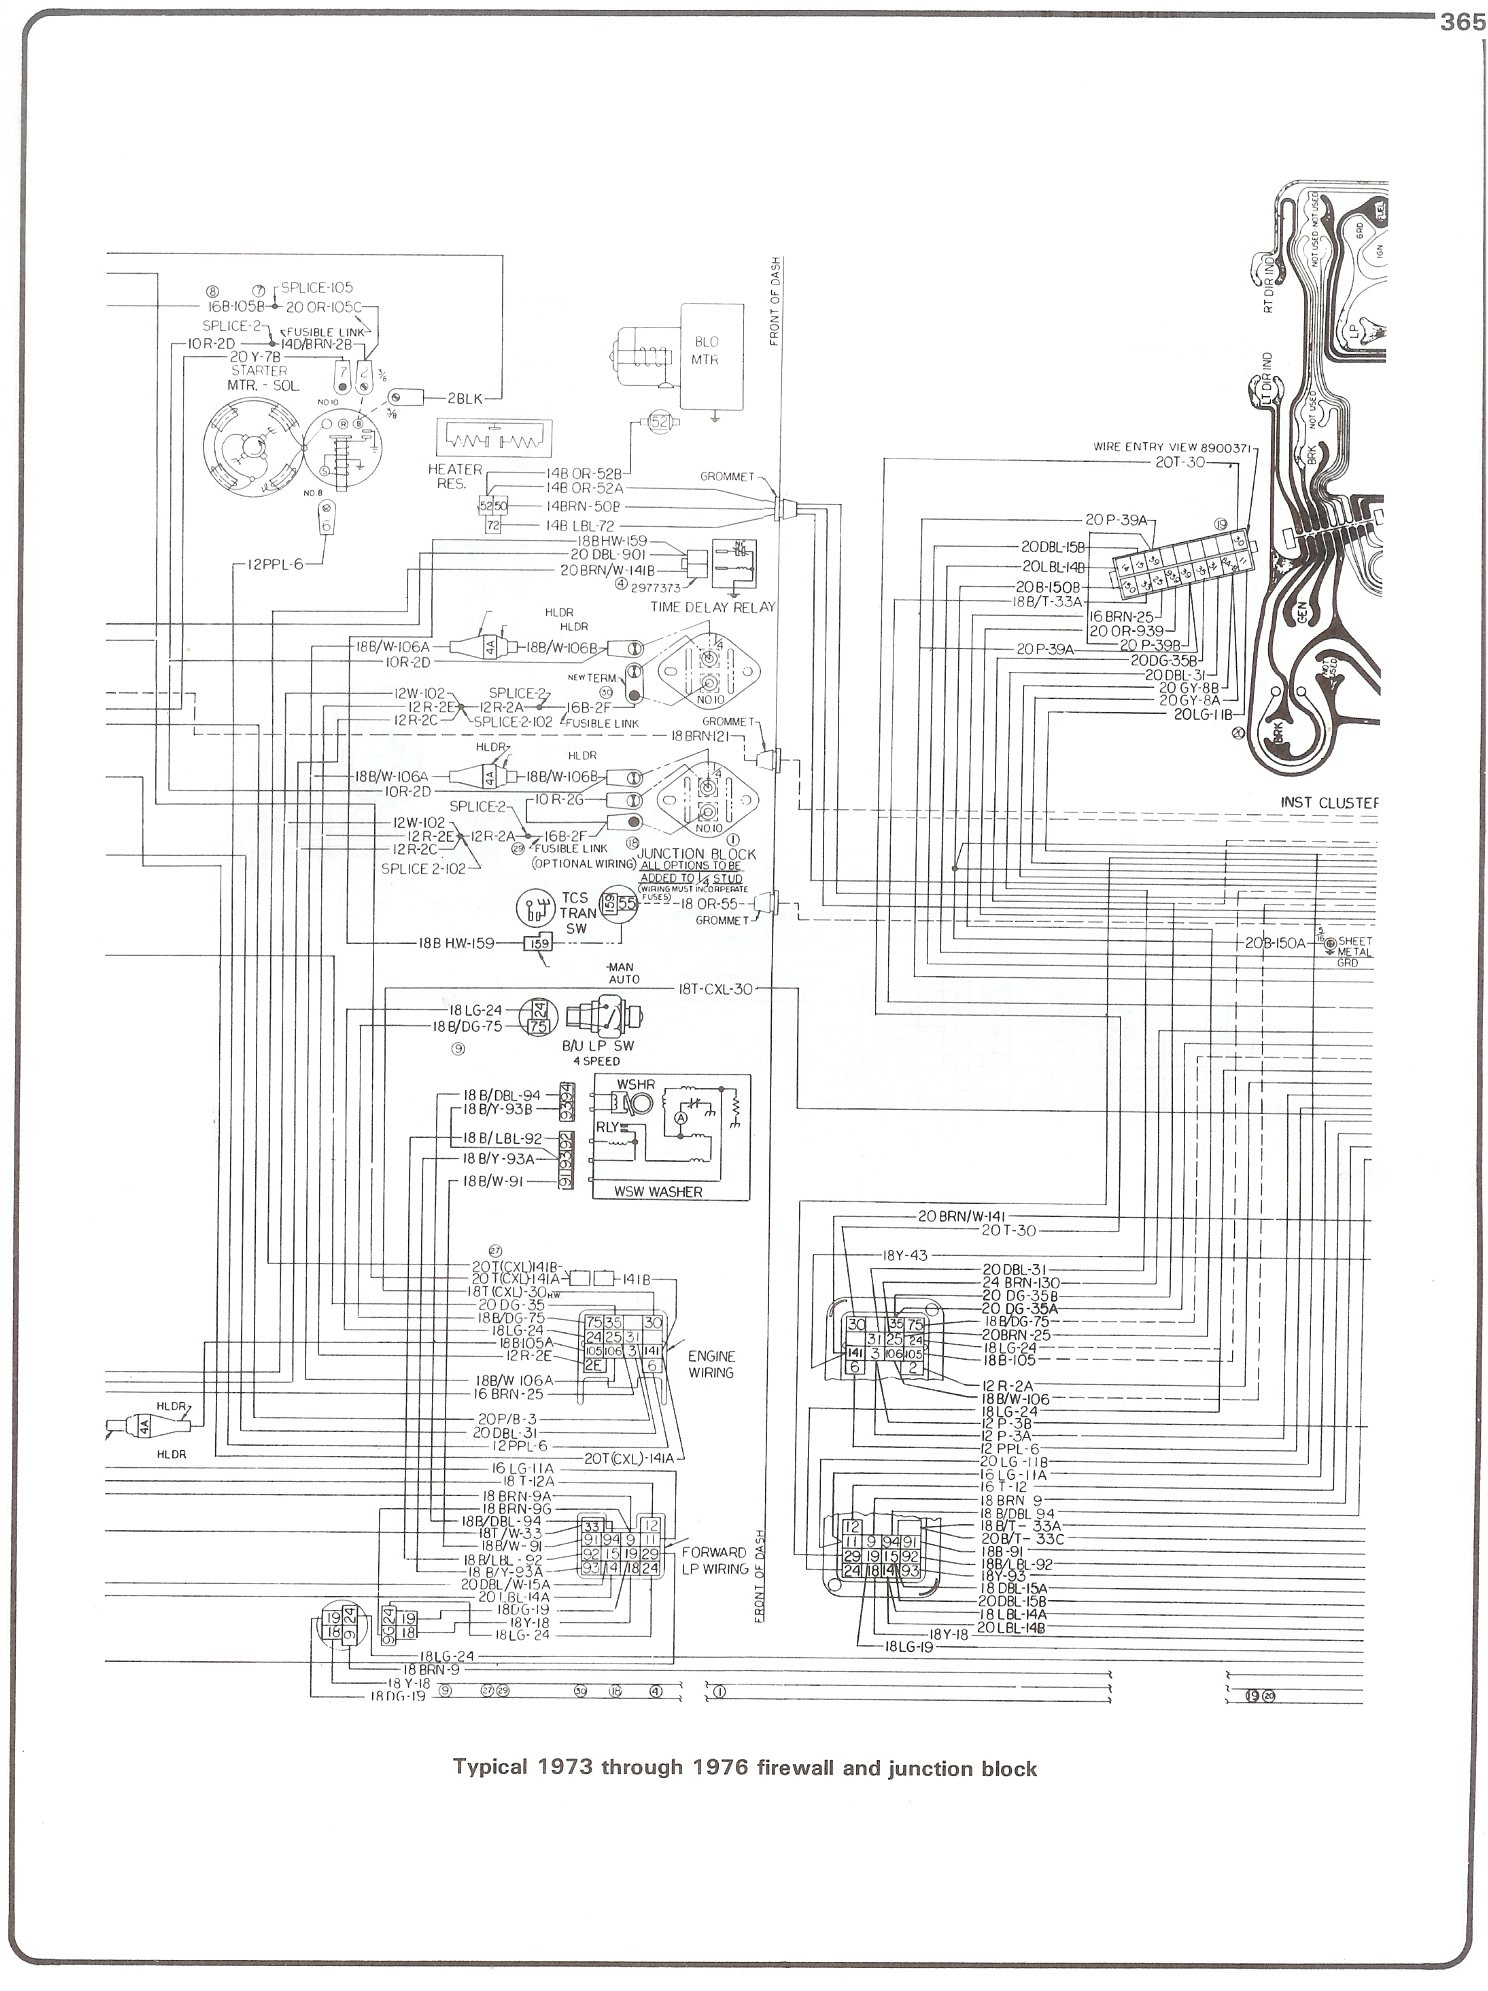 73 76_firewall_junct complete 73 87 wiring diagrams 1983 chevy k10 wiring harness at bayanpartner.co